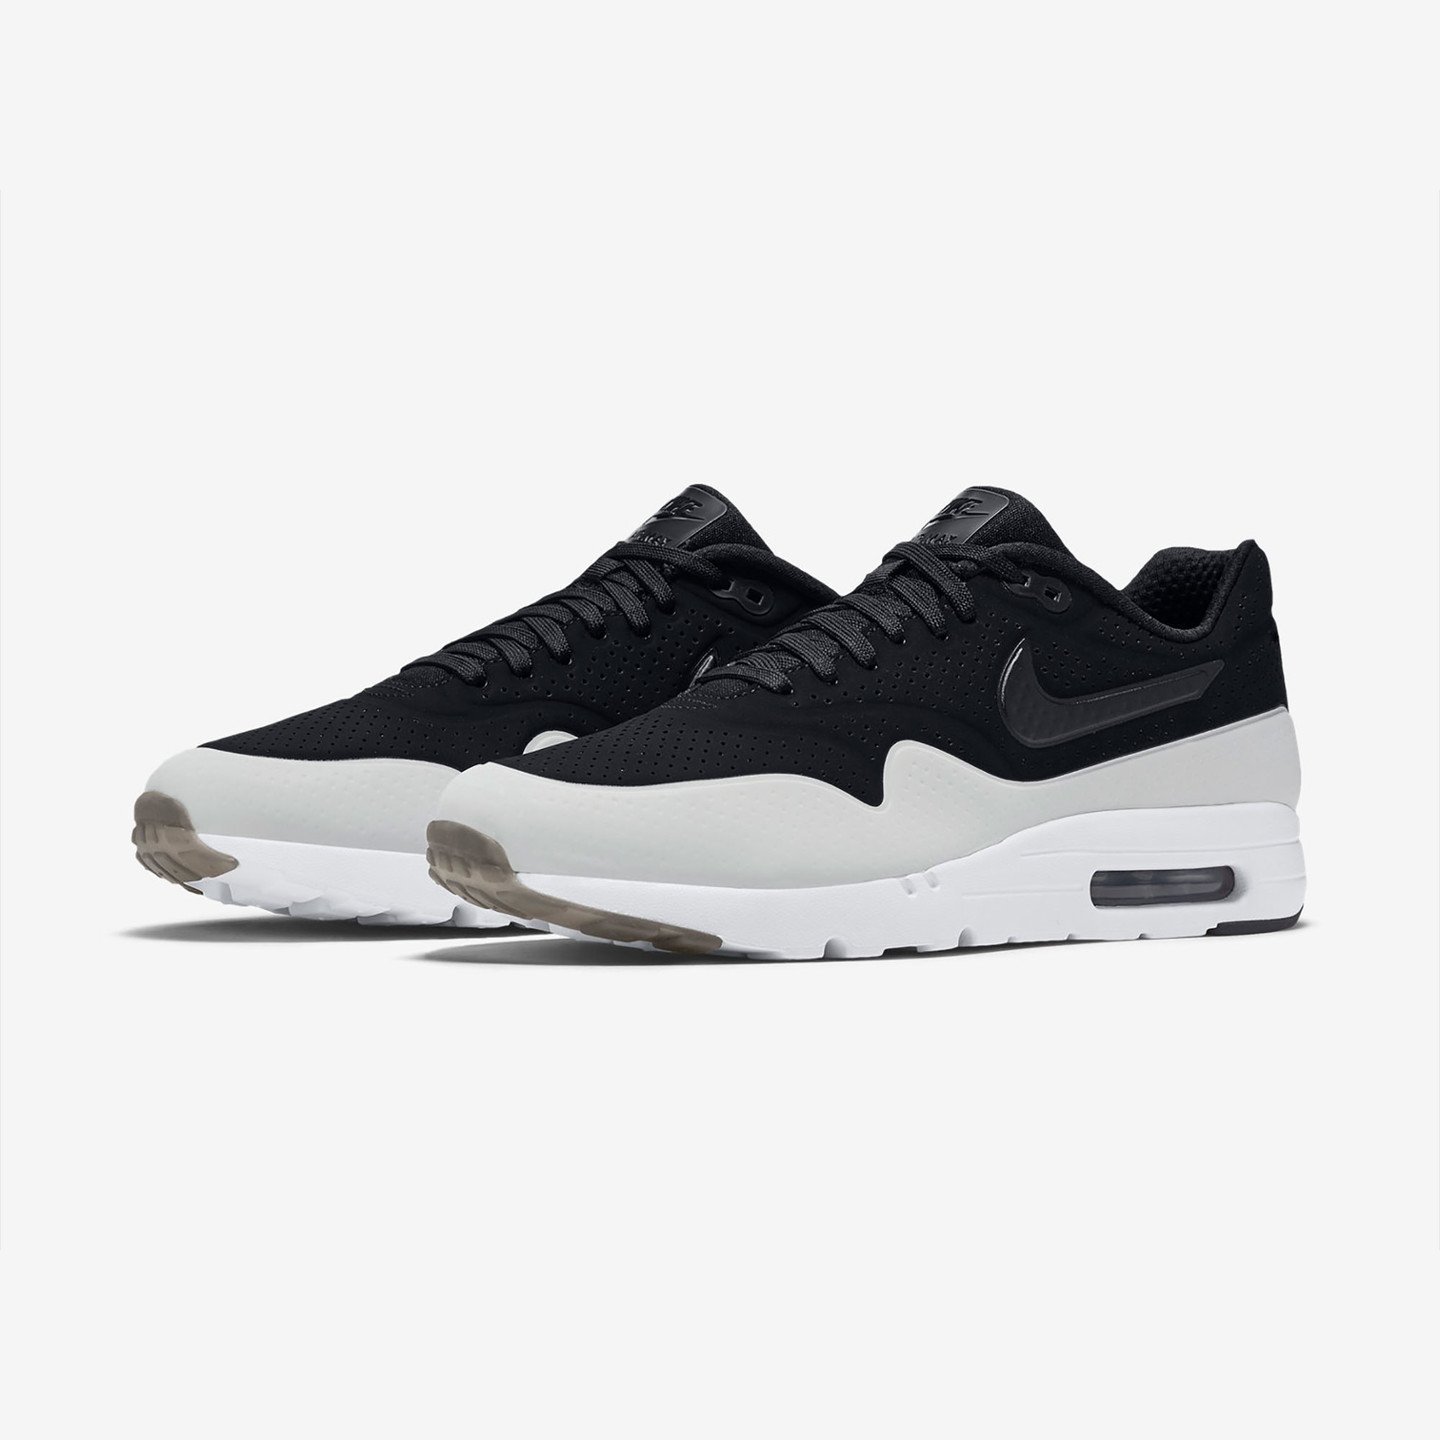 Nike Air Max 1 Ultra Moire Black / White 705297-011-43